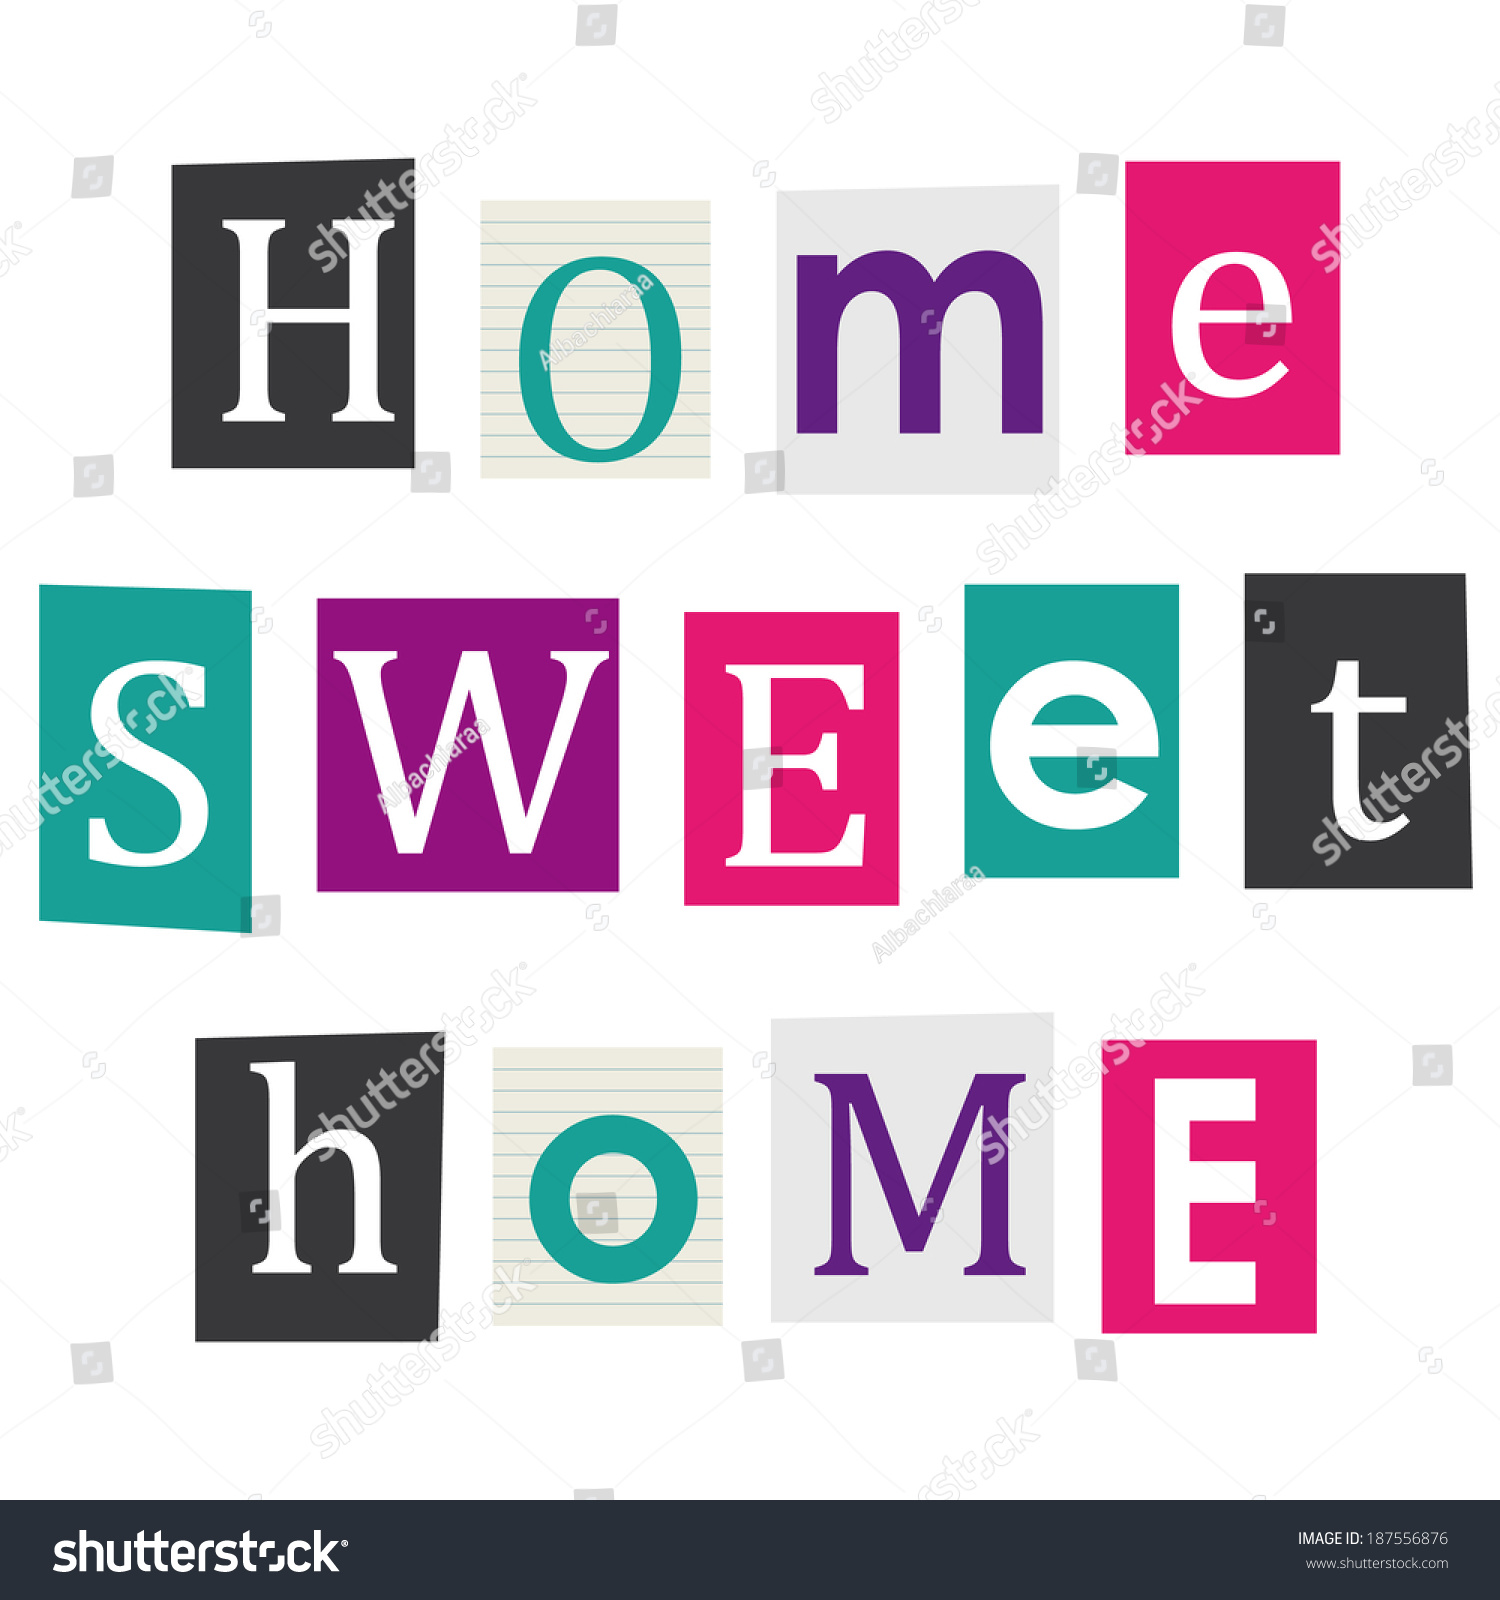 Home sweet home letters cut out stock illustration 187556876 home sweet home letters cut out stock illustration 187556876 shutterstock spiritdancerdesigns Gallery